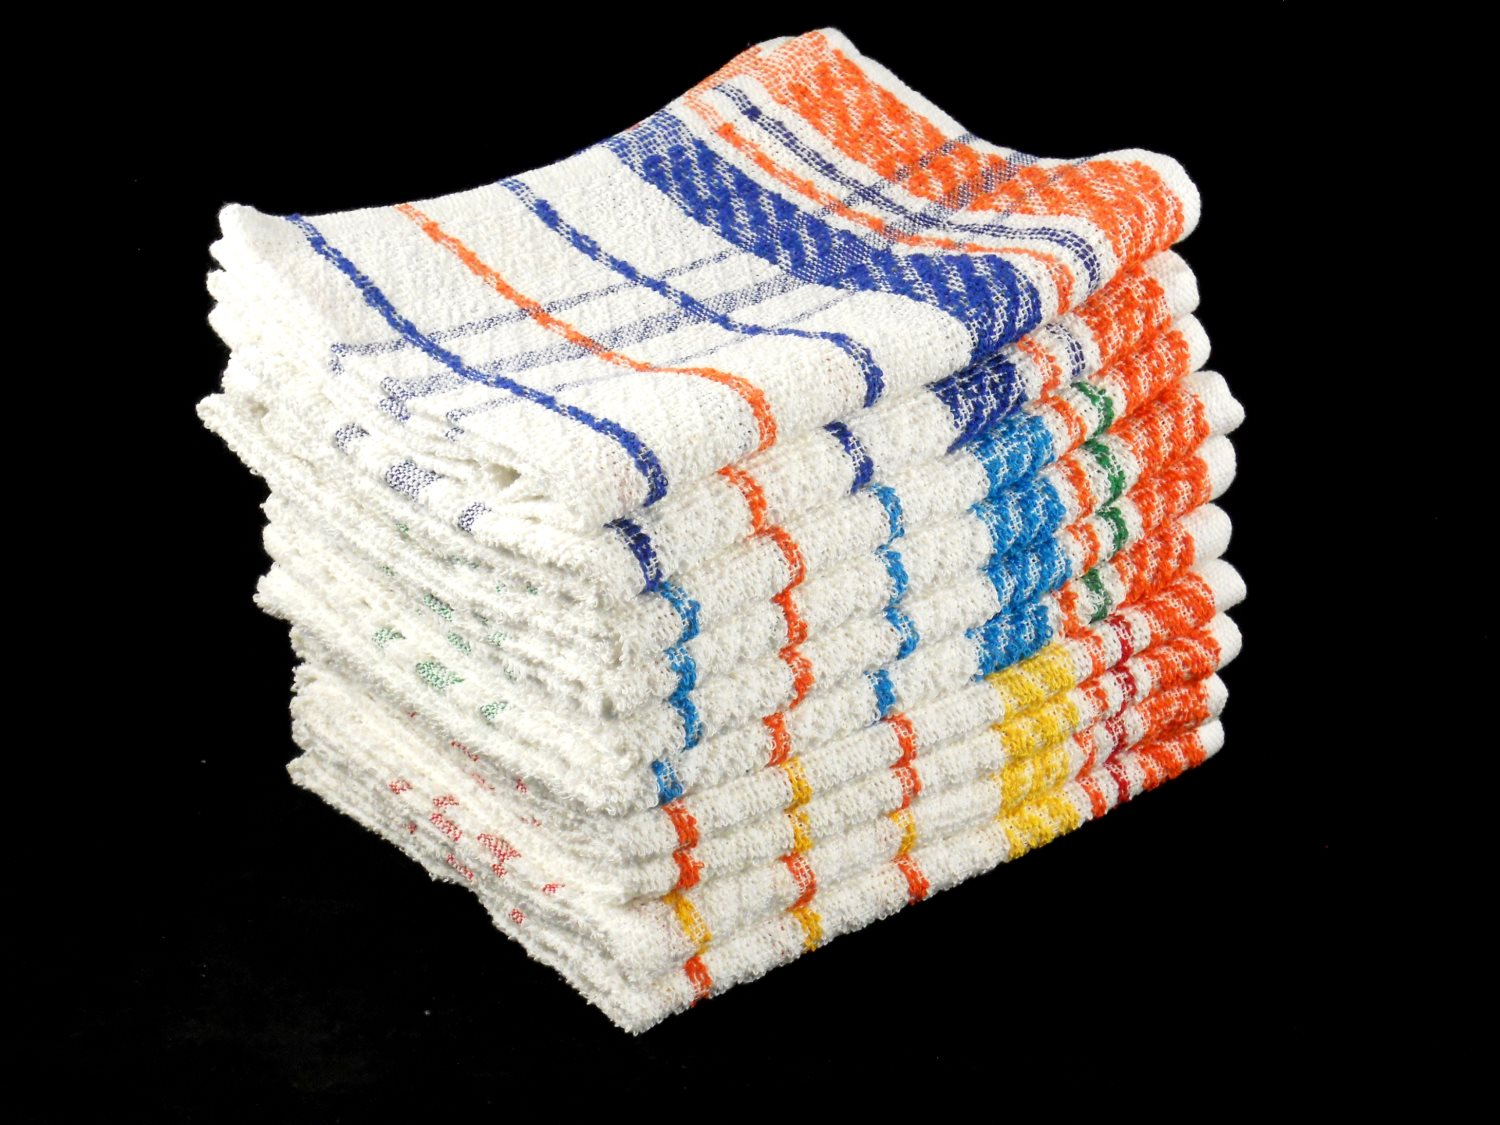 Cheap Hand Towels 100% Cotton 360 gsm Budget Quality Multicoloured